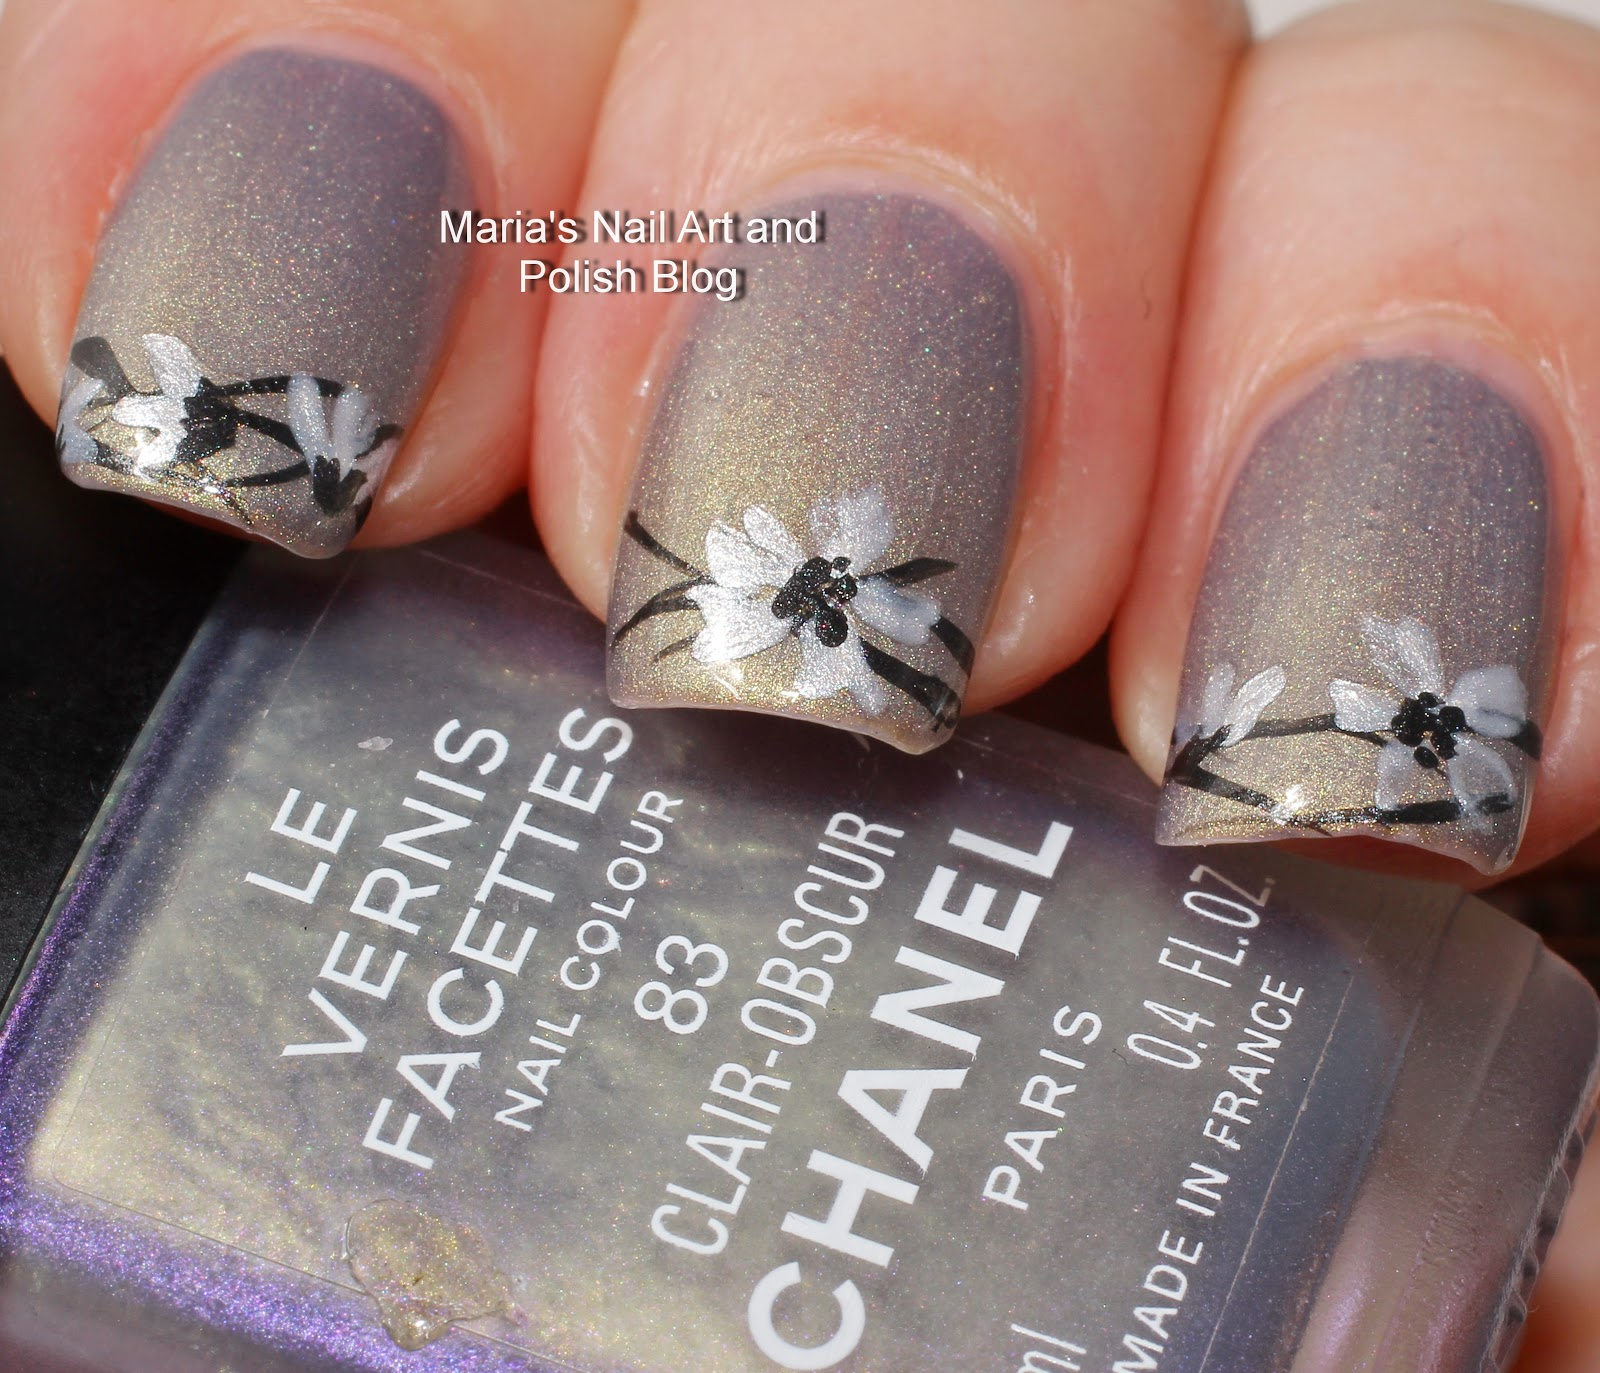 Marias nail art and polish blog obscure flowers for claire 2000 i havent shown swatches yet i kept the nail art simple and tried to stay within a frame of colors suitable for her the top coat is seche vite prinsesfo Choice Image